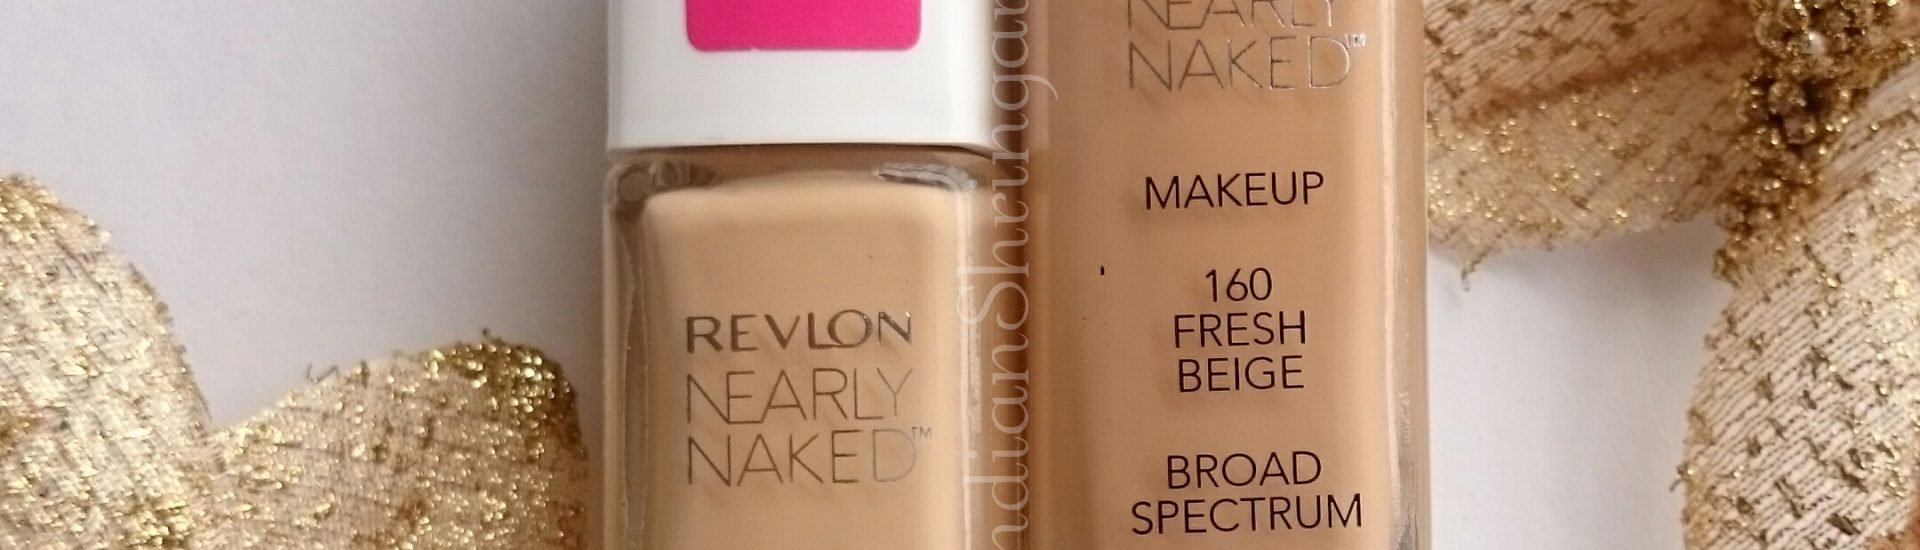 Revlon Nearly Naked Foundation Review and Swatch